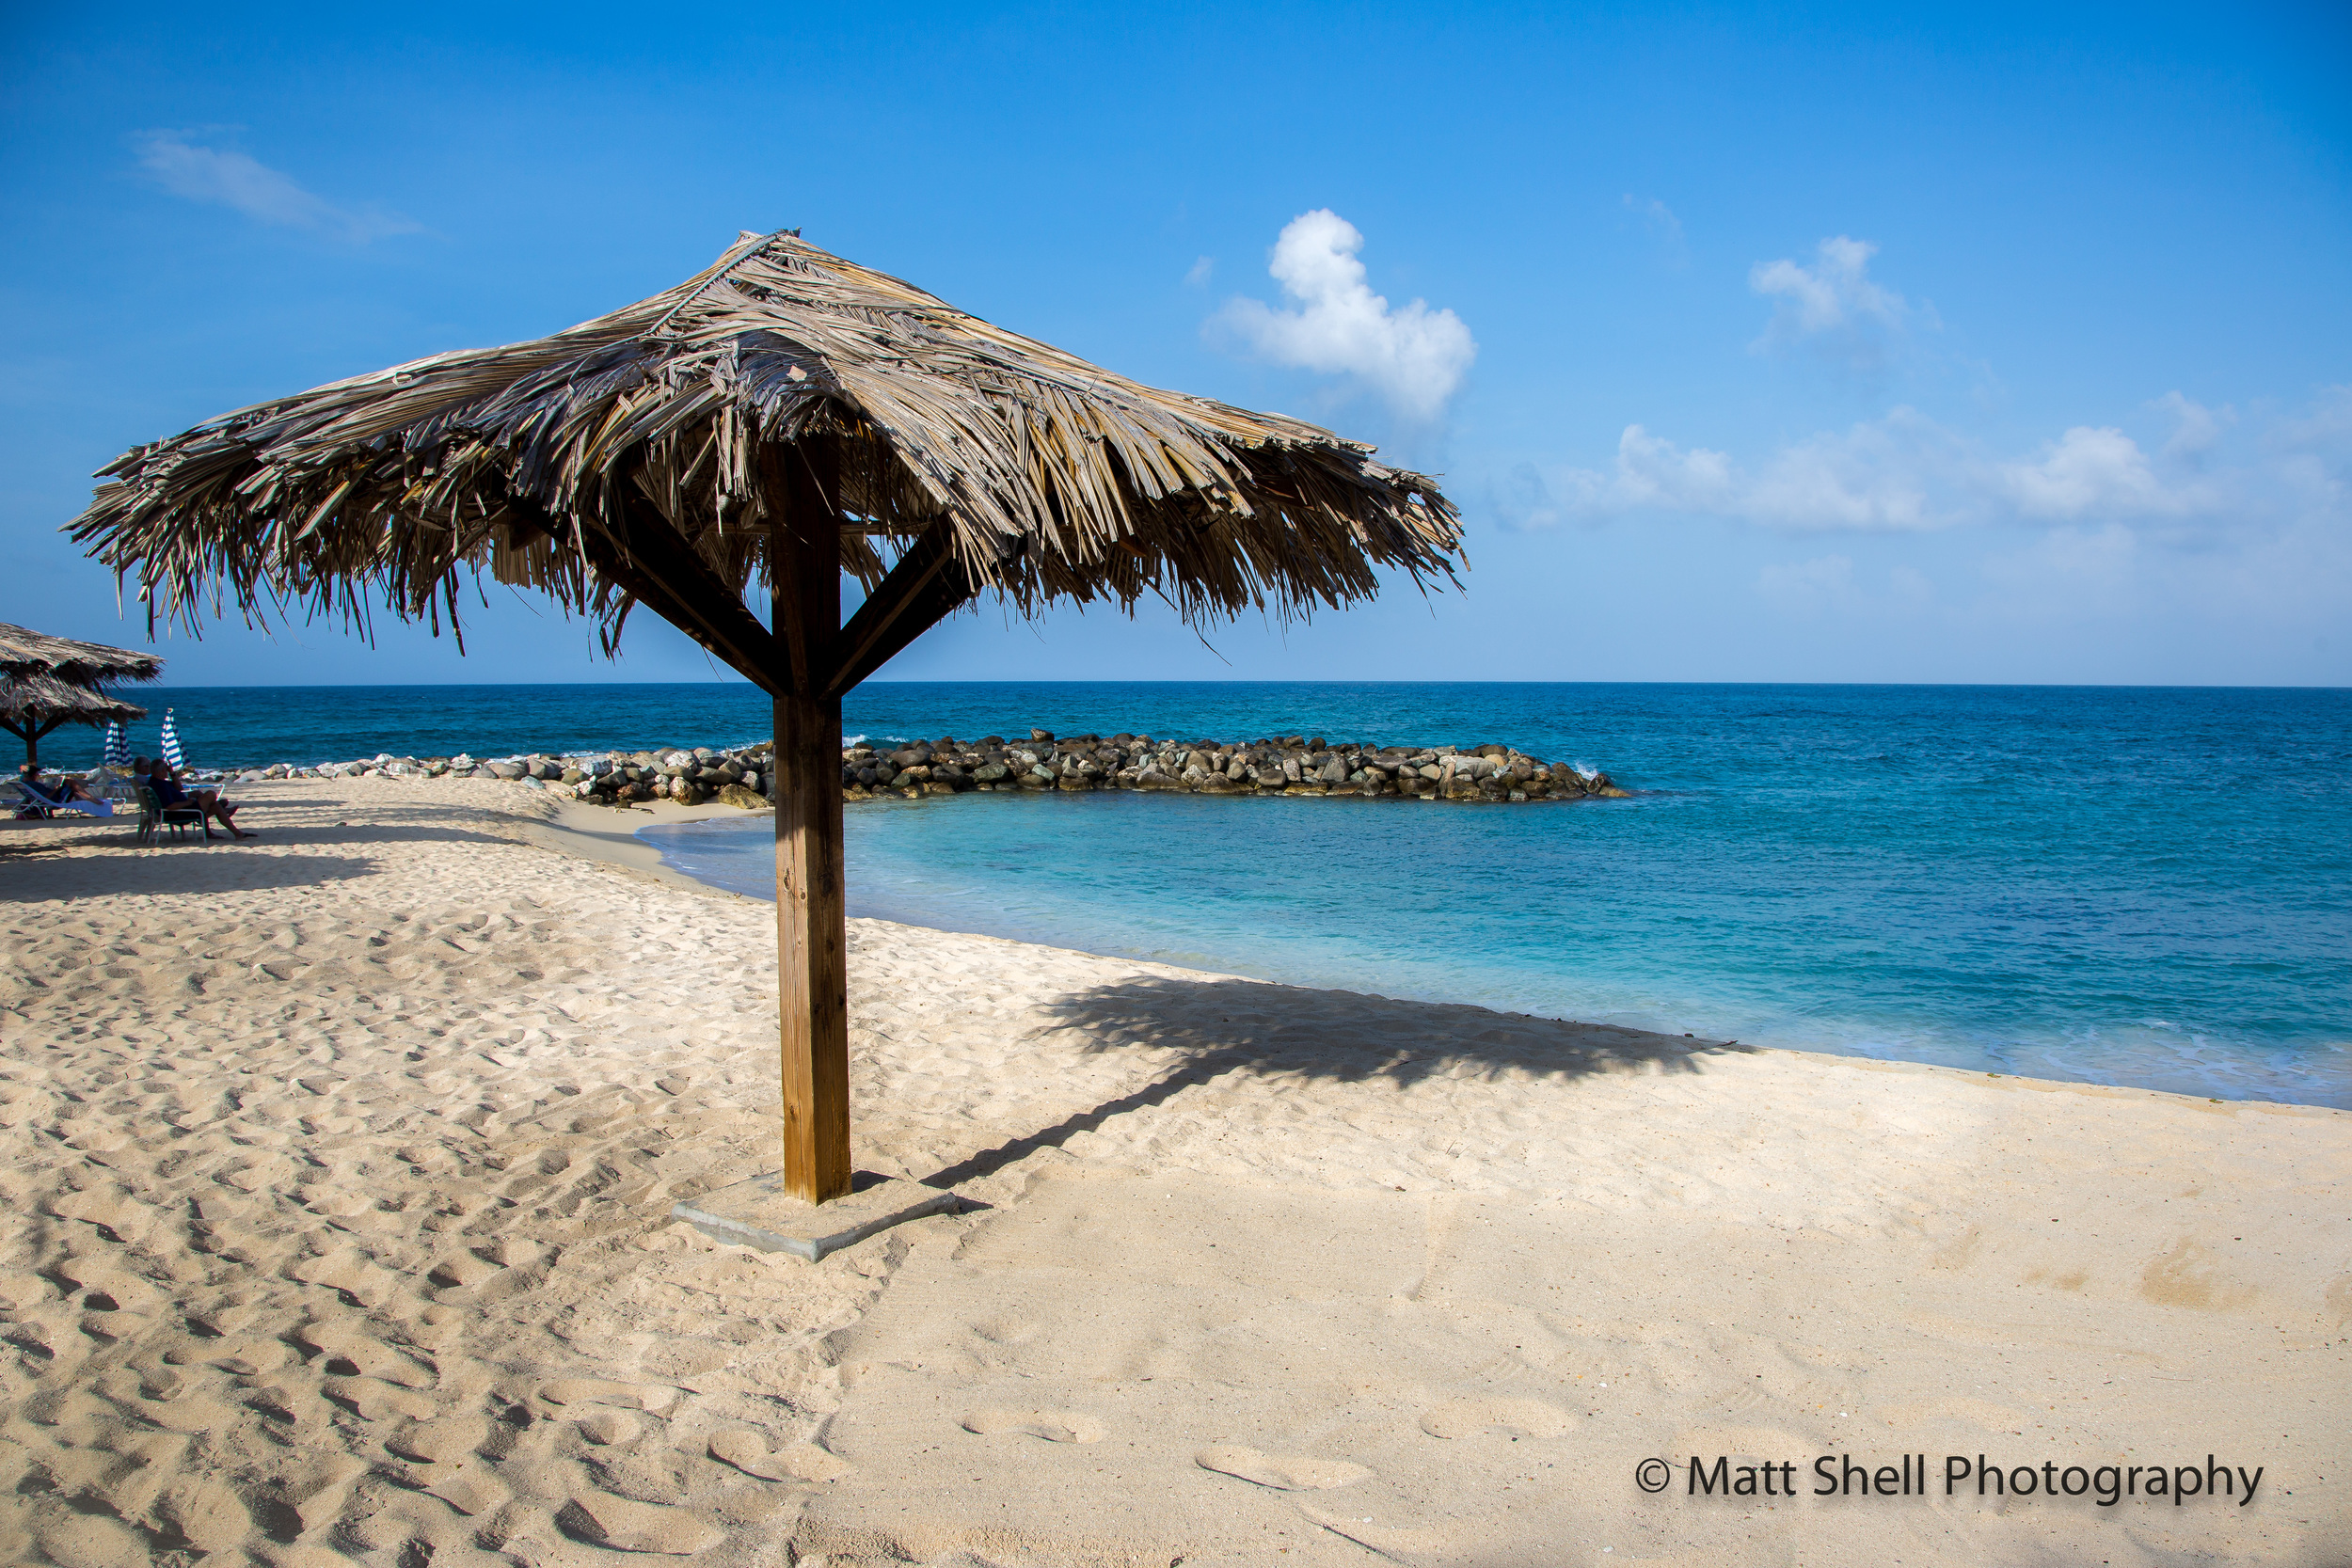 The problem with taking photos of beaches in St. Maarten is they're most often covered in people. Get out early or stay late... you'll have the best light and a better chance of finding an unpopulated area.